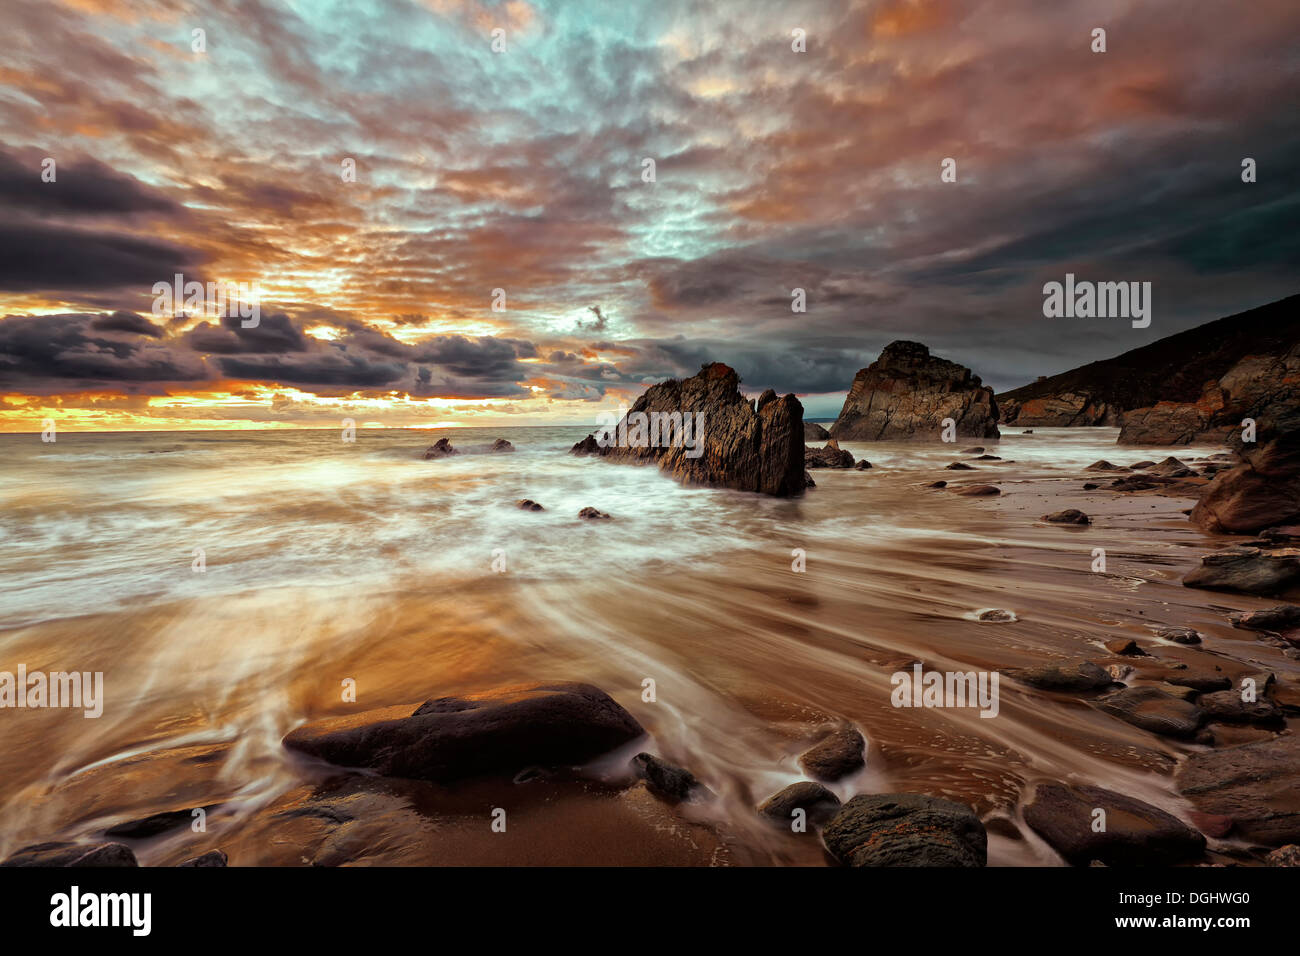 A view across the beach at Freathy. - Stock Image